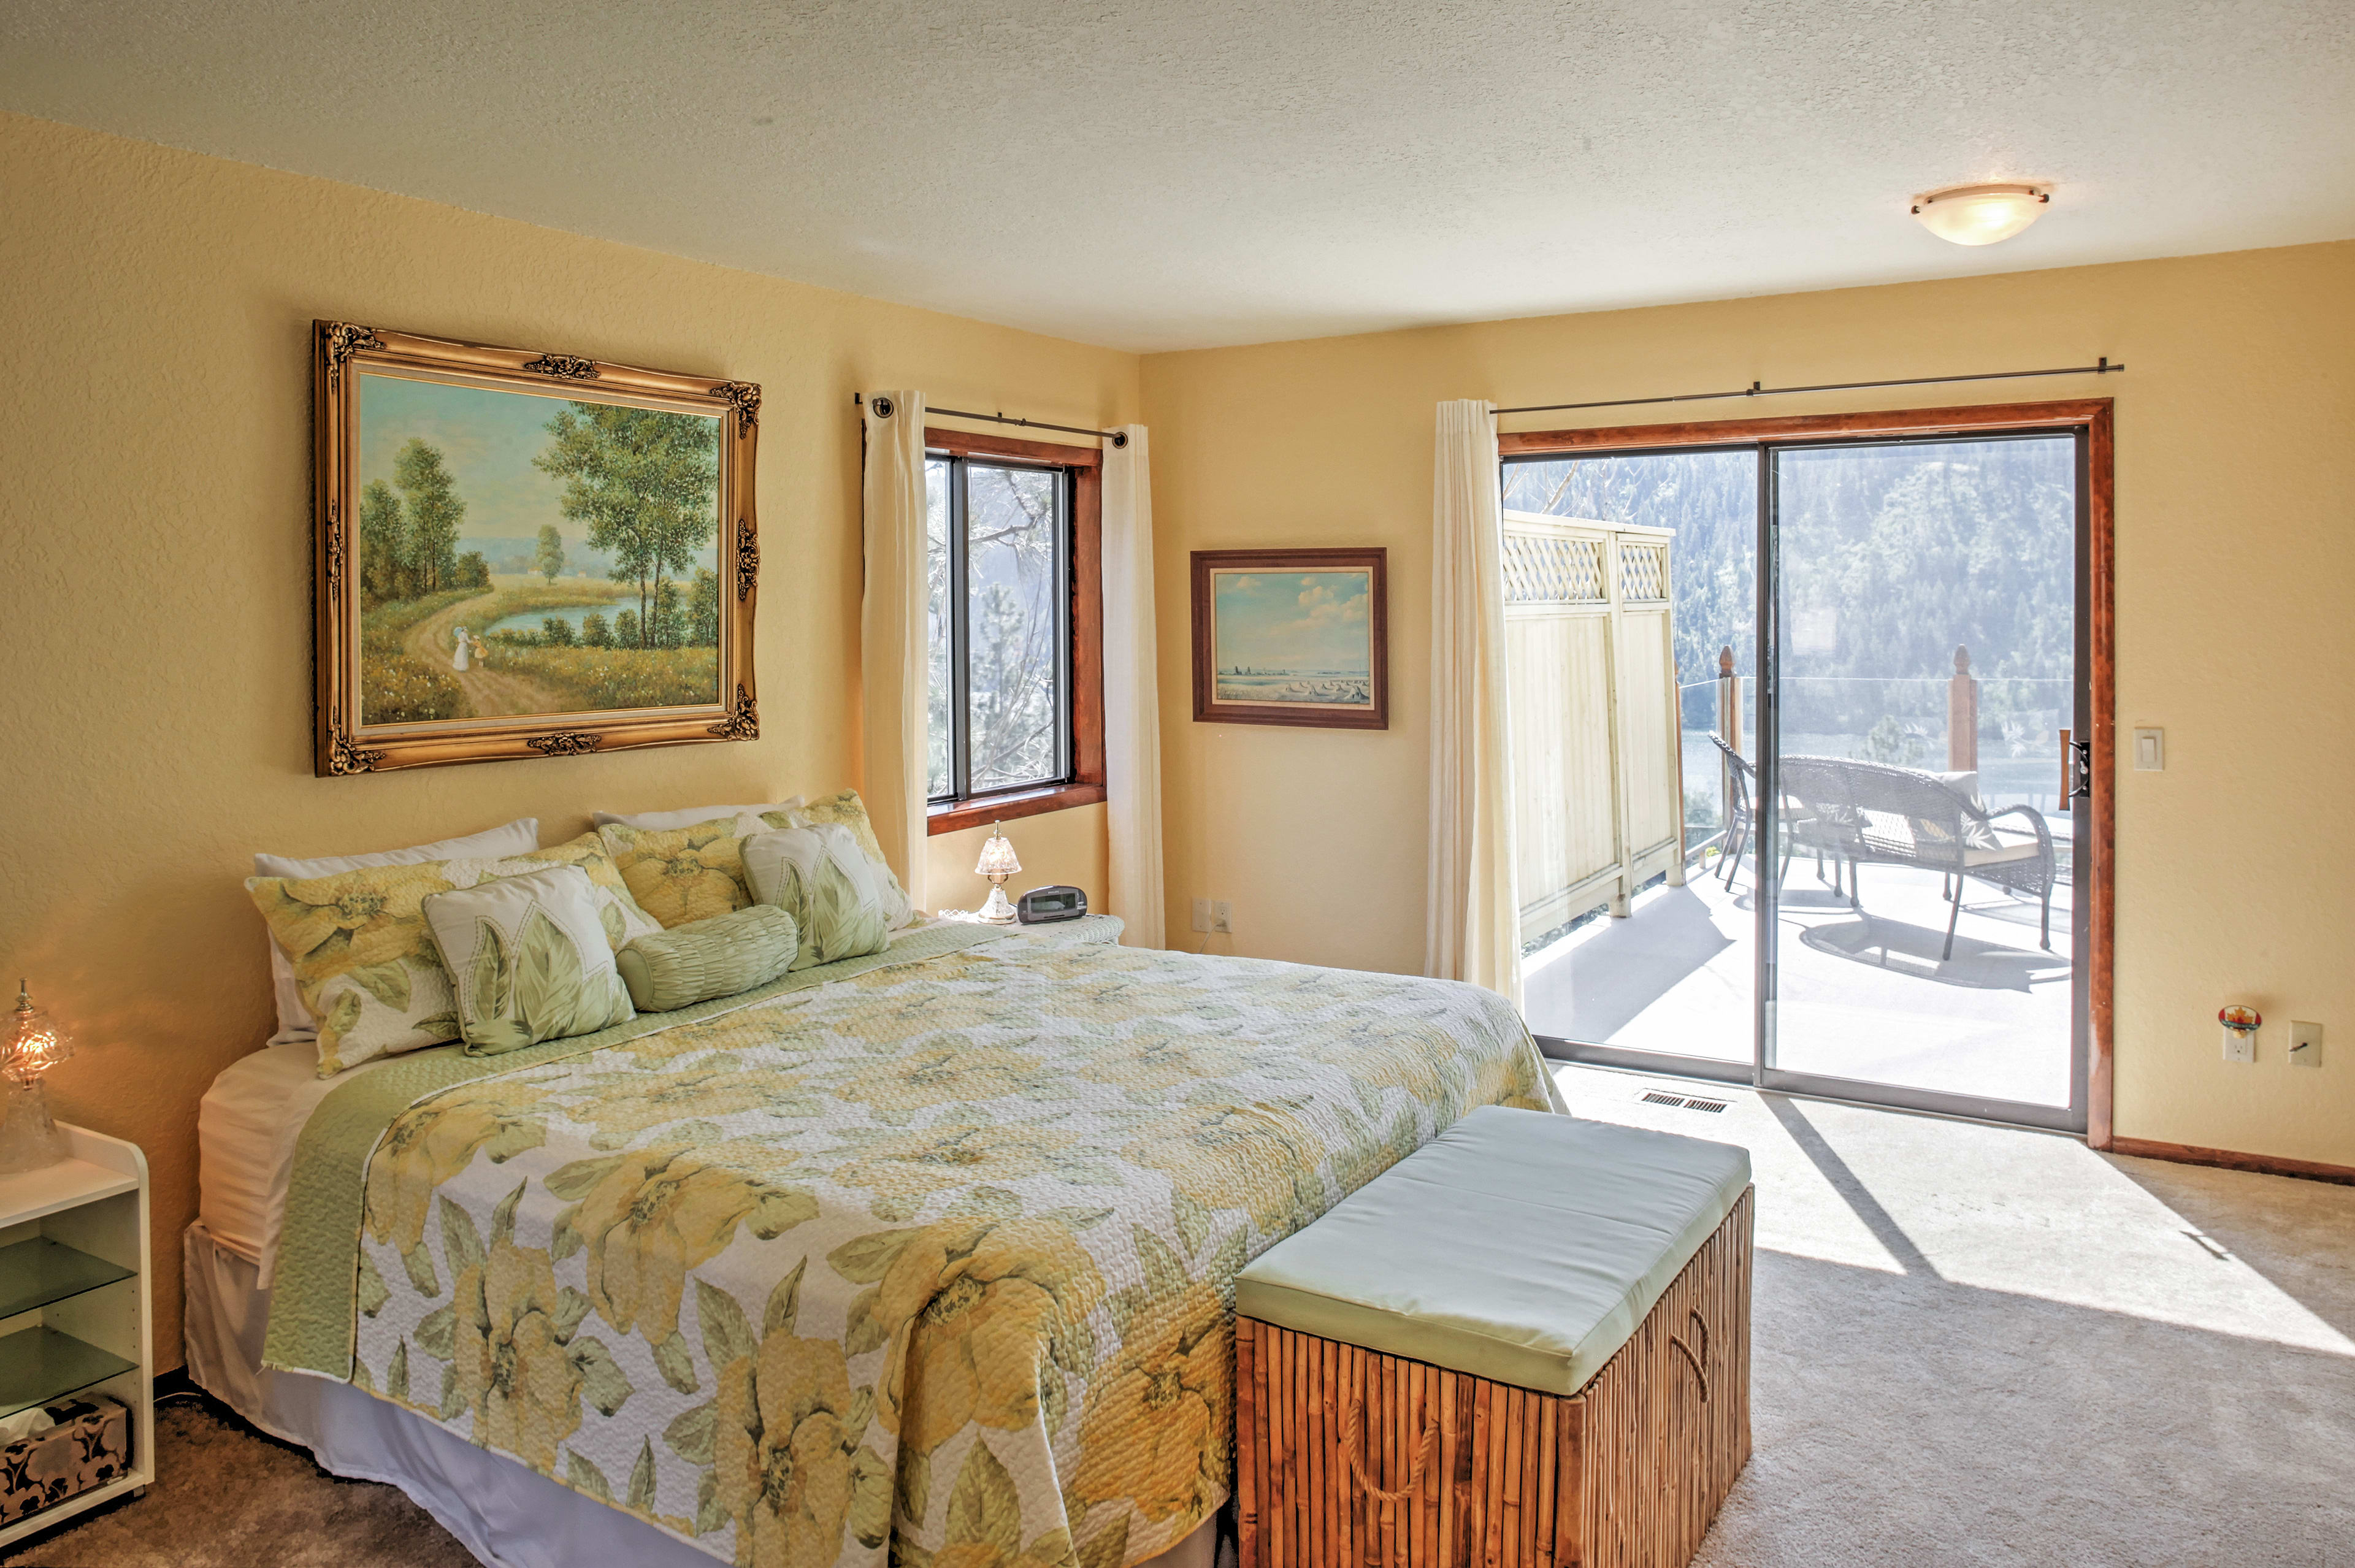 The master suite includes a plush king bed and private deck access.